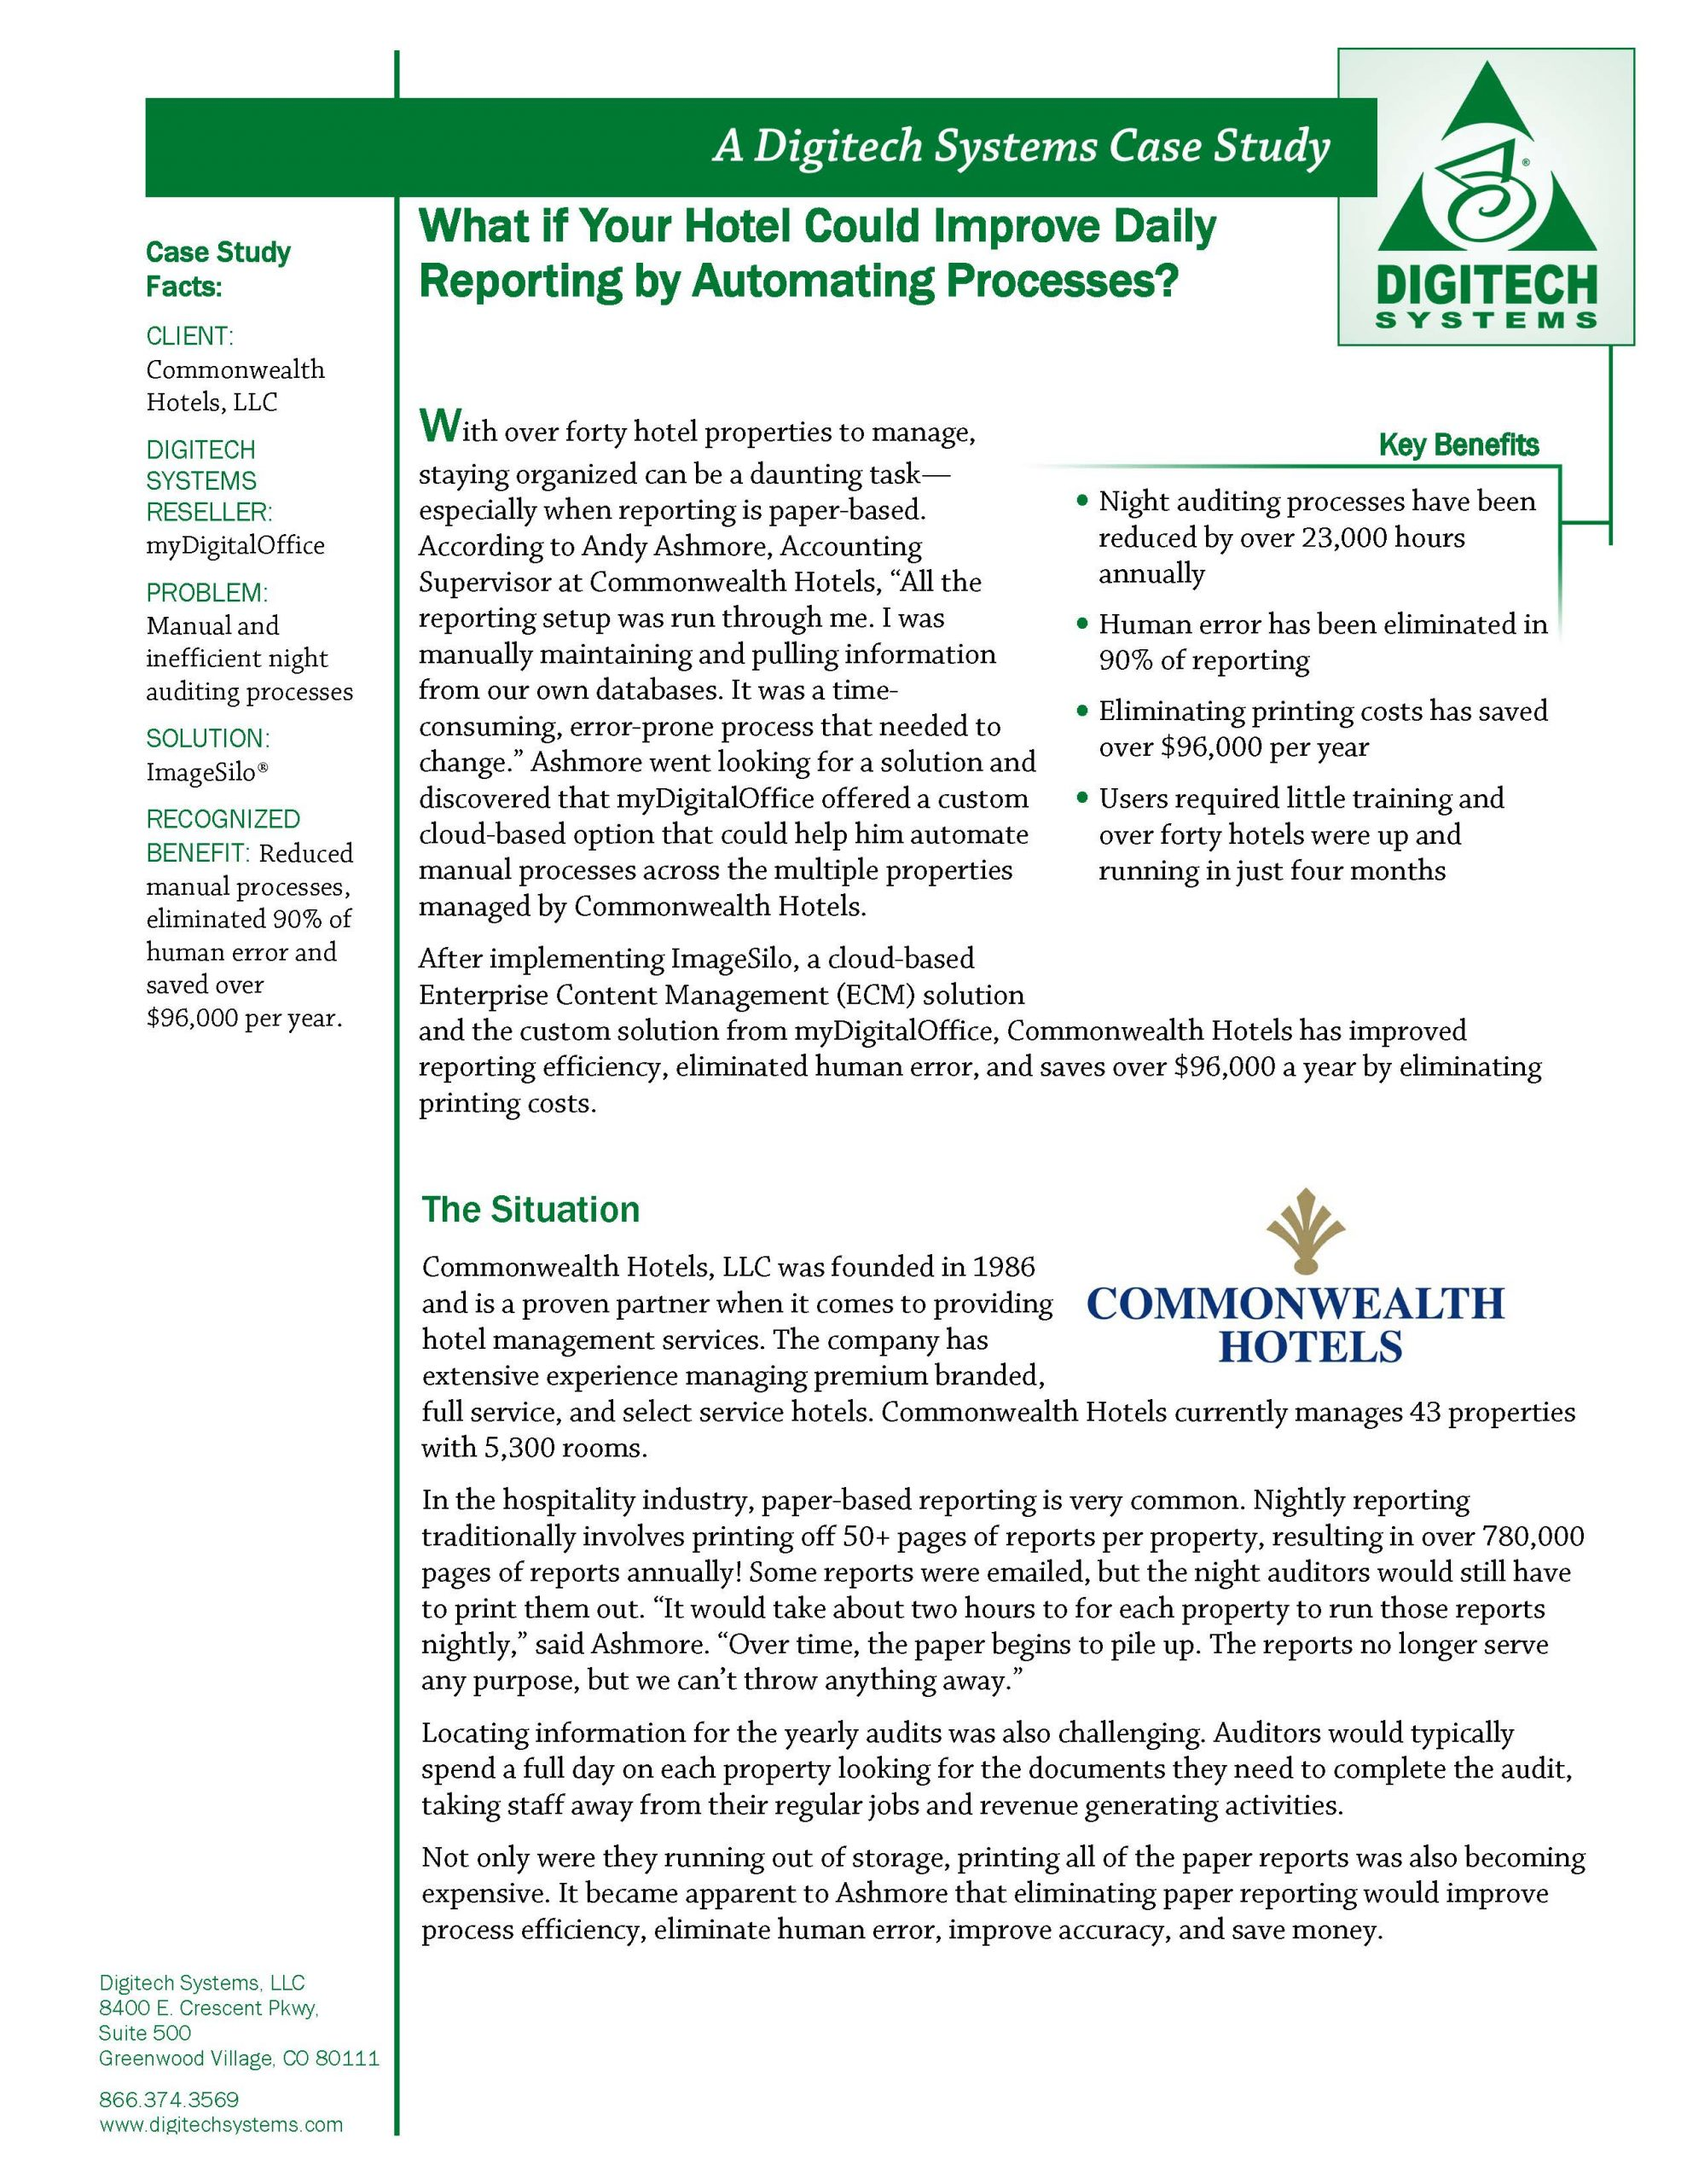 CommonwealthHotelsCaseStudy_Page_1